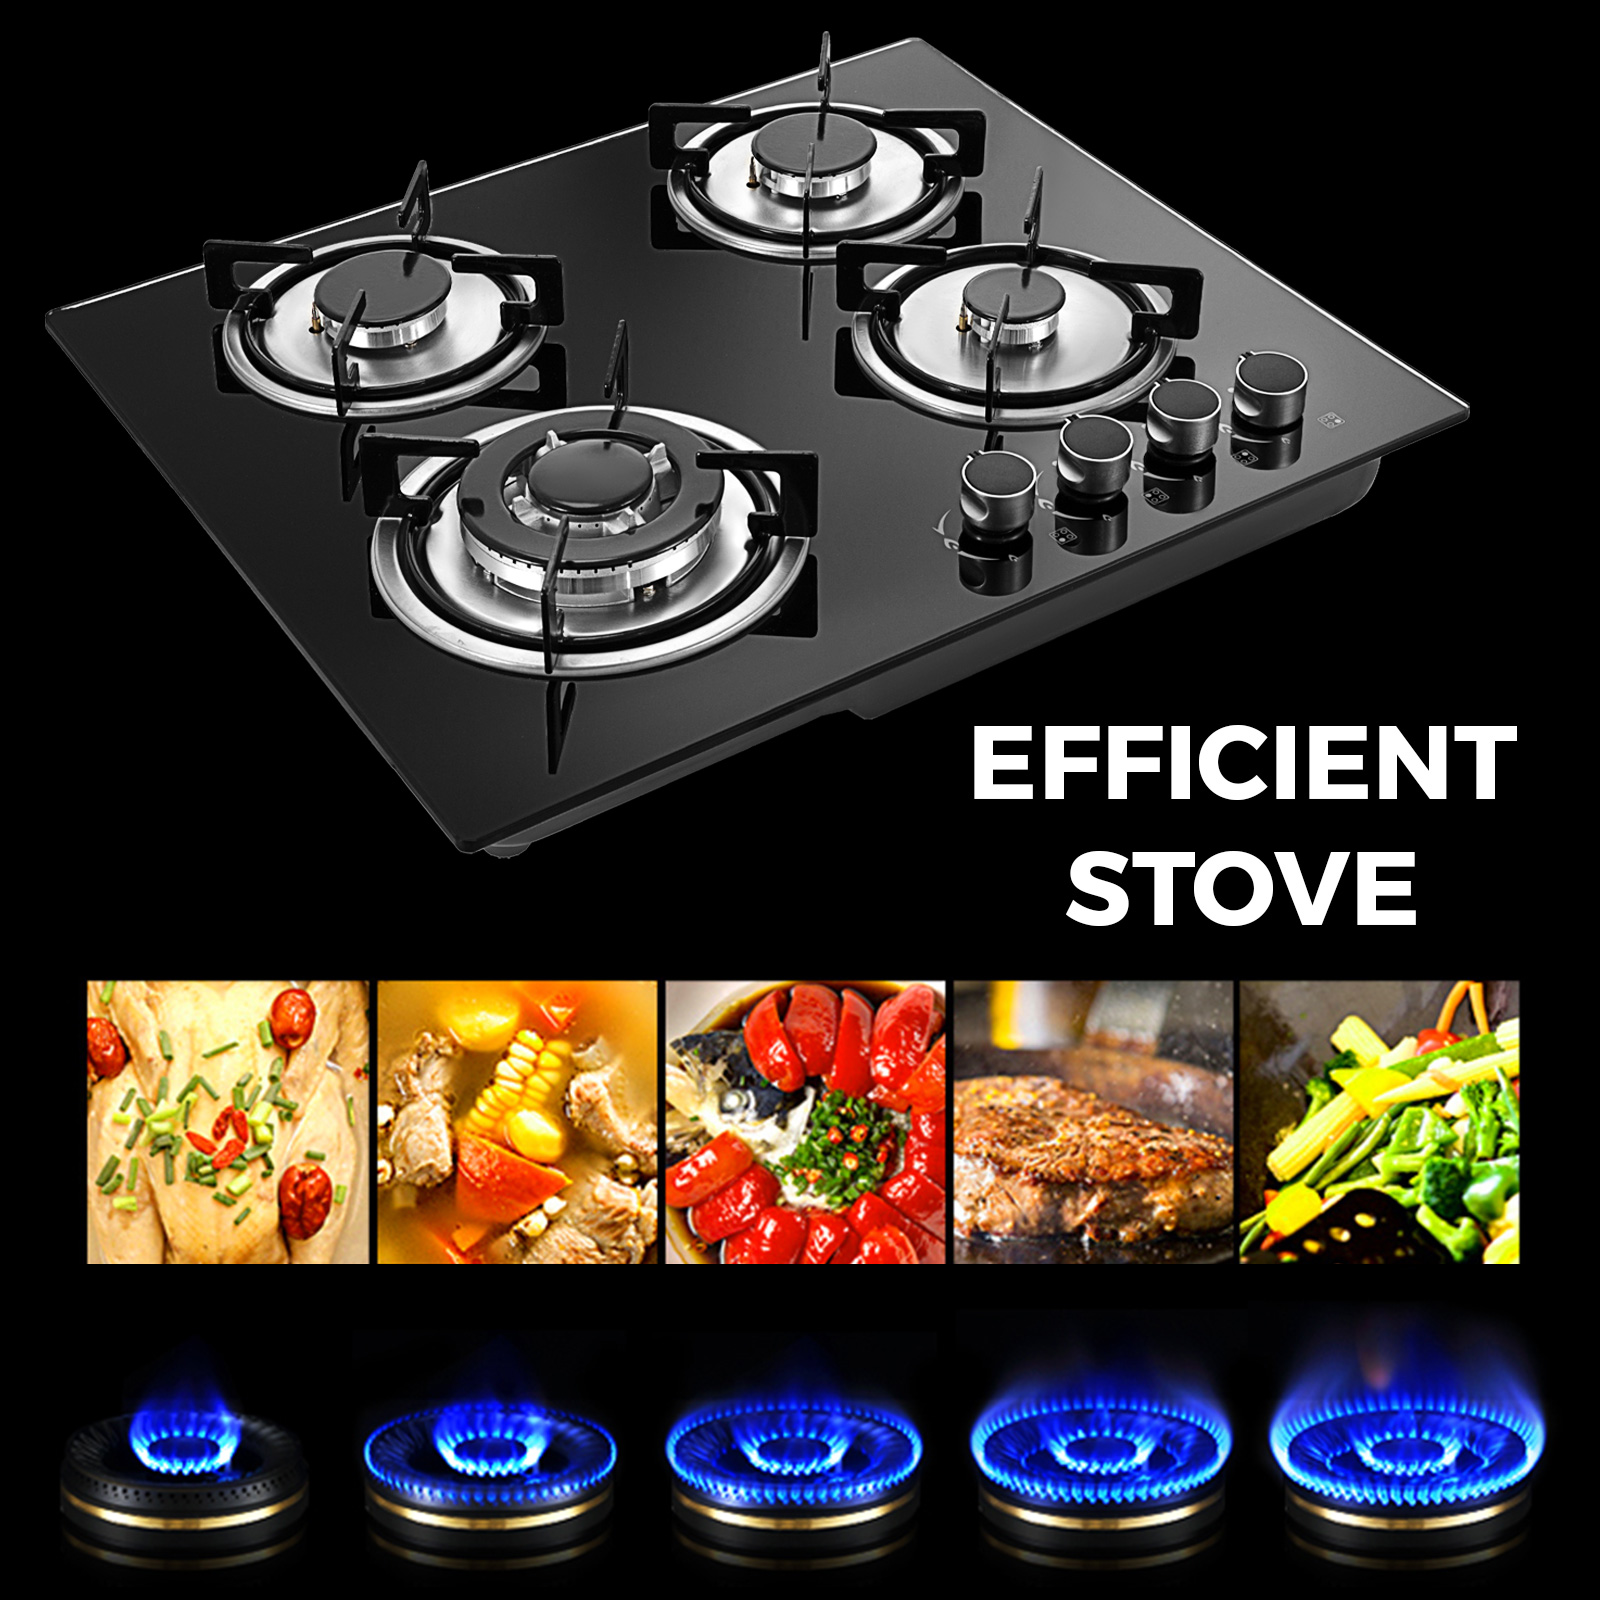 Tempered-Glass-4-Burners-Stove-Gas-Cooktop-iron-grates-LPG-amp-LNG-Gas-St-Steel thumbnail 7